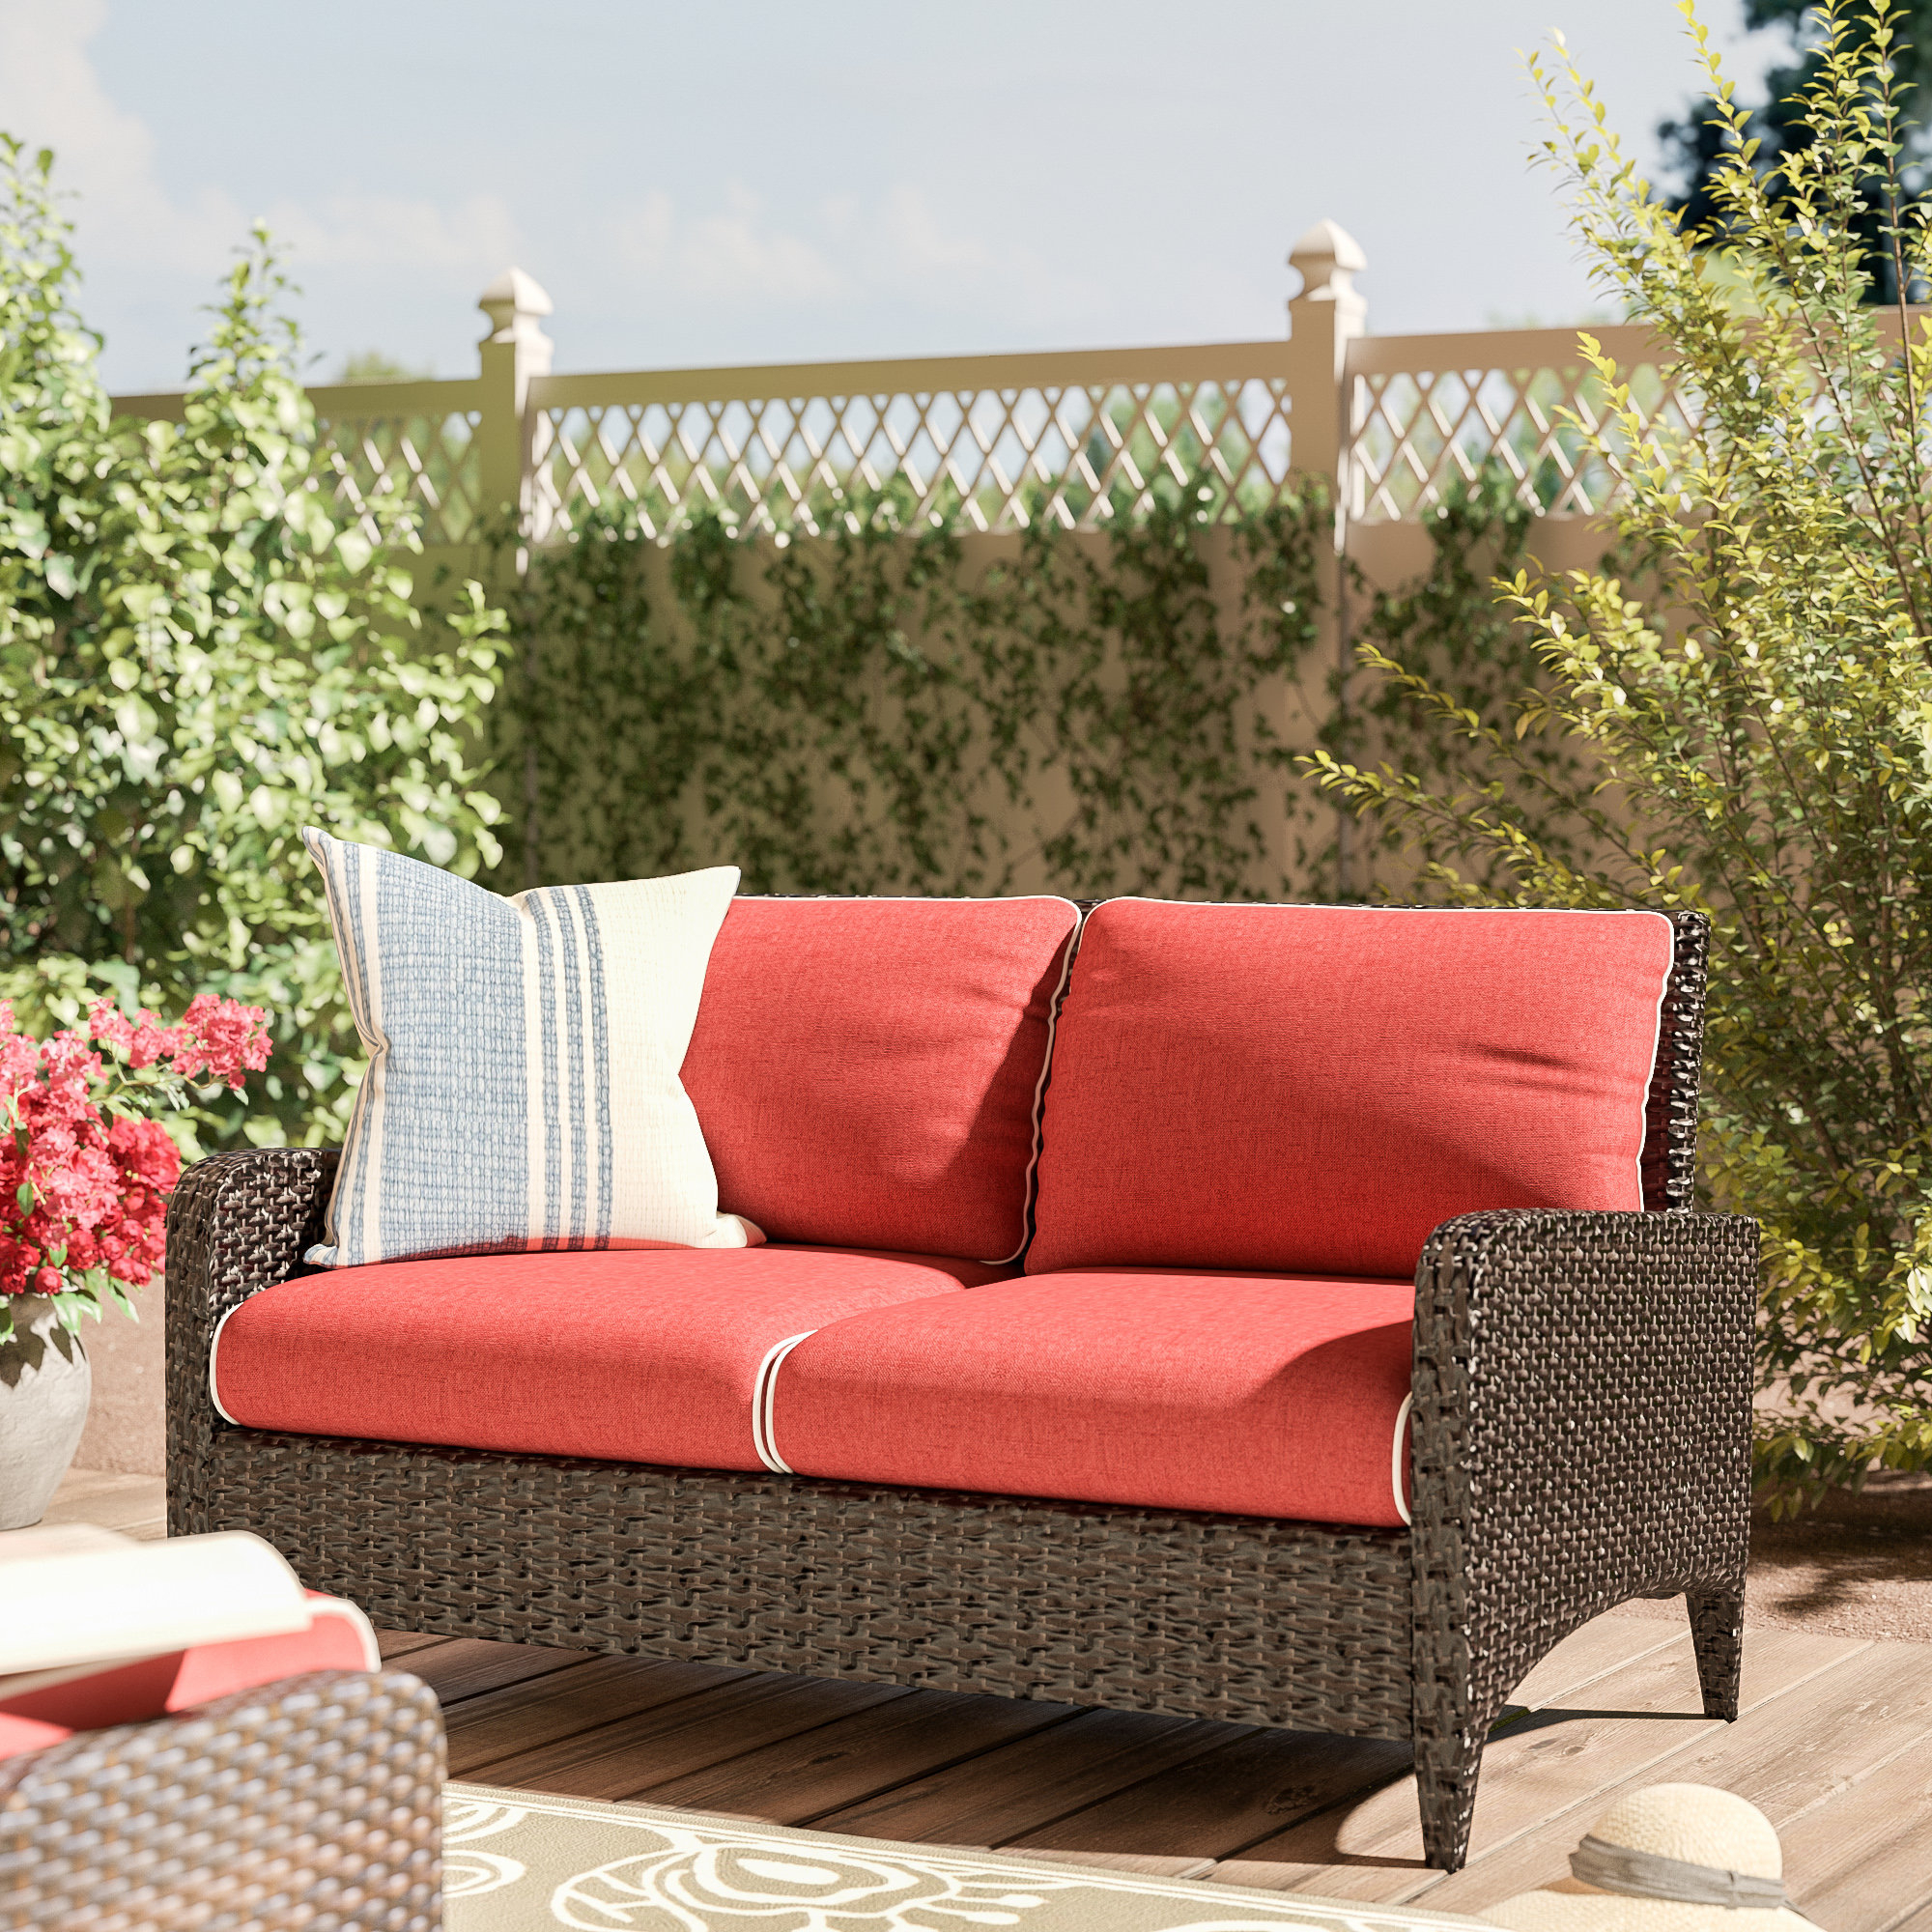 Wayfair With Preferred Mullenax Outdoor Loveseats With Cushions (View 18 of 20)